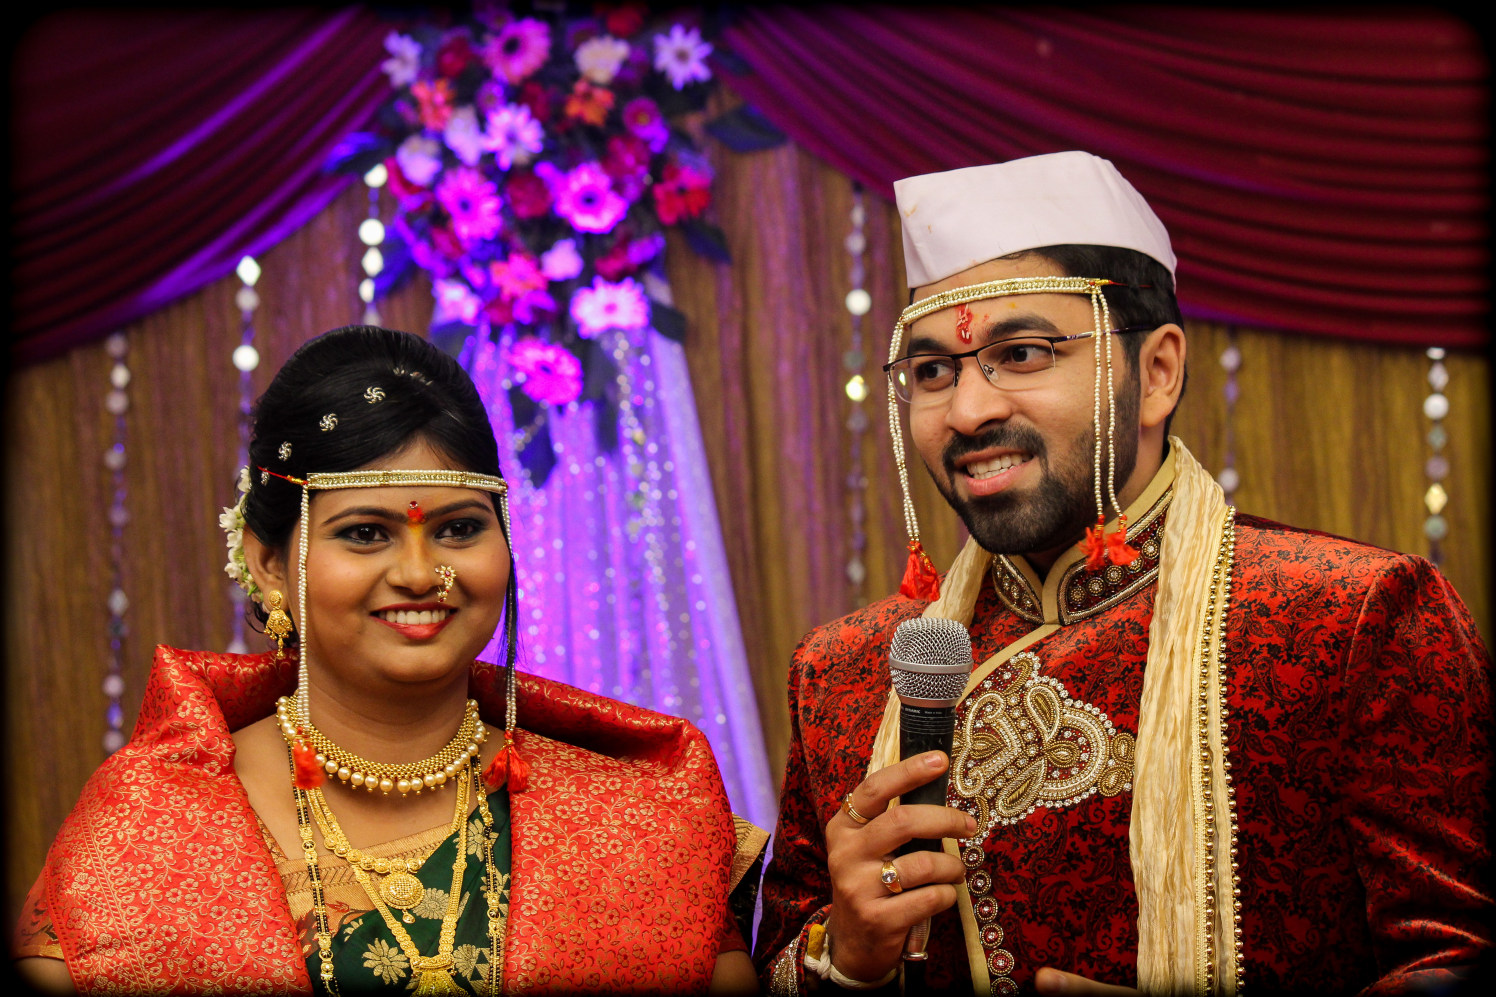 All smiles as the groom gives a speech by Saurabh Photography Wedding-photography | Weddings Photos & Ideas